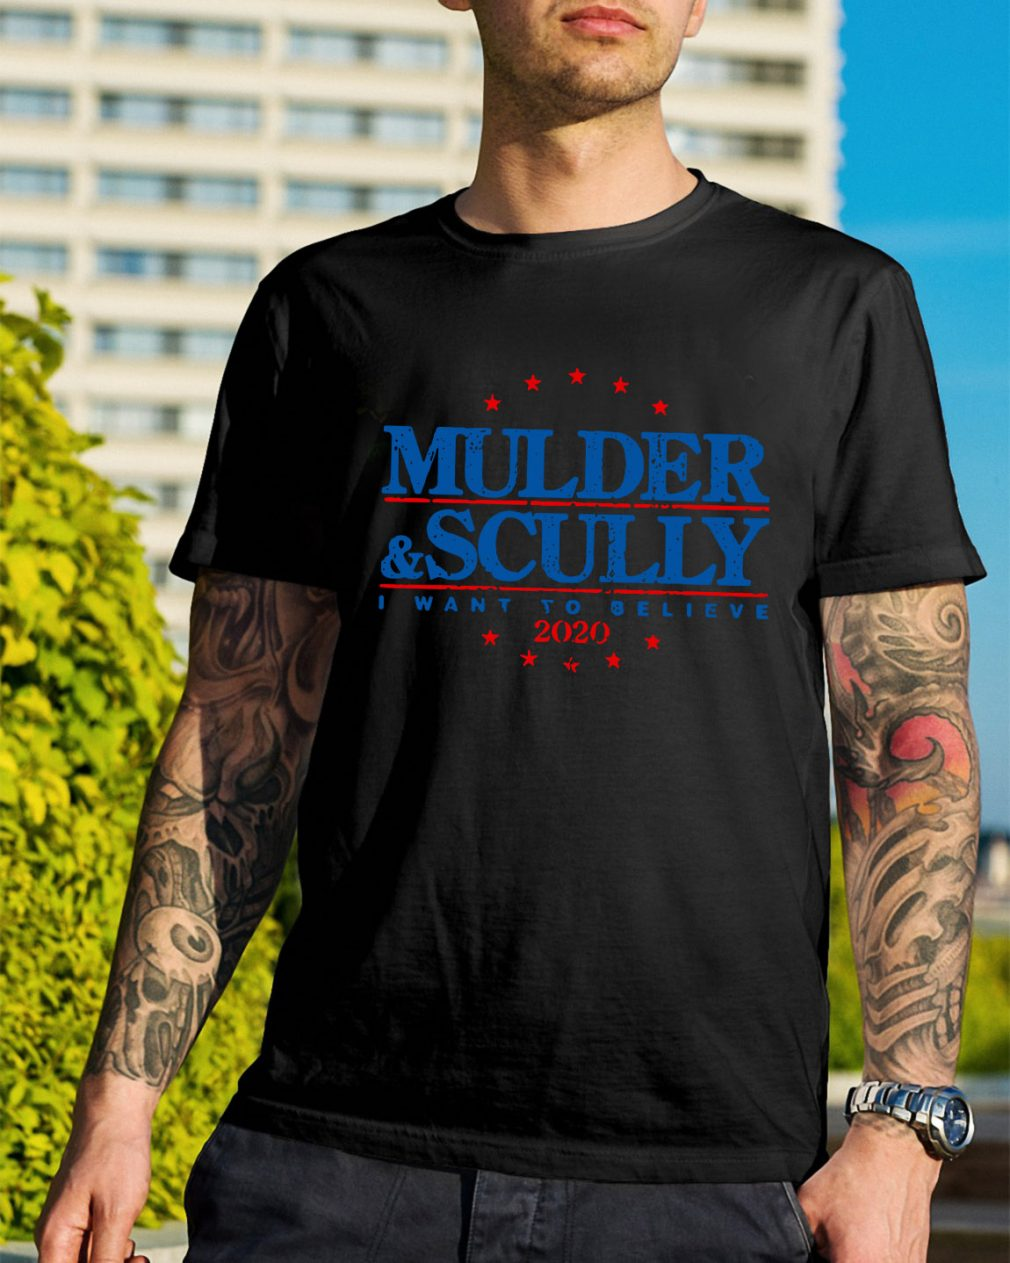 Mulder and Scully I want to believe 2020 shirt